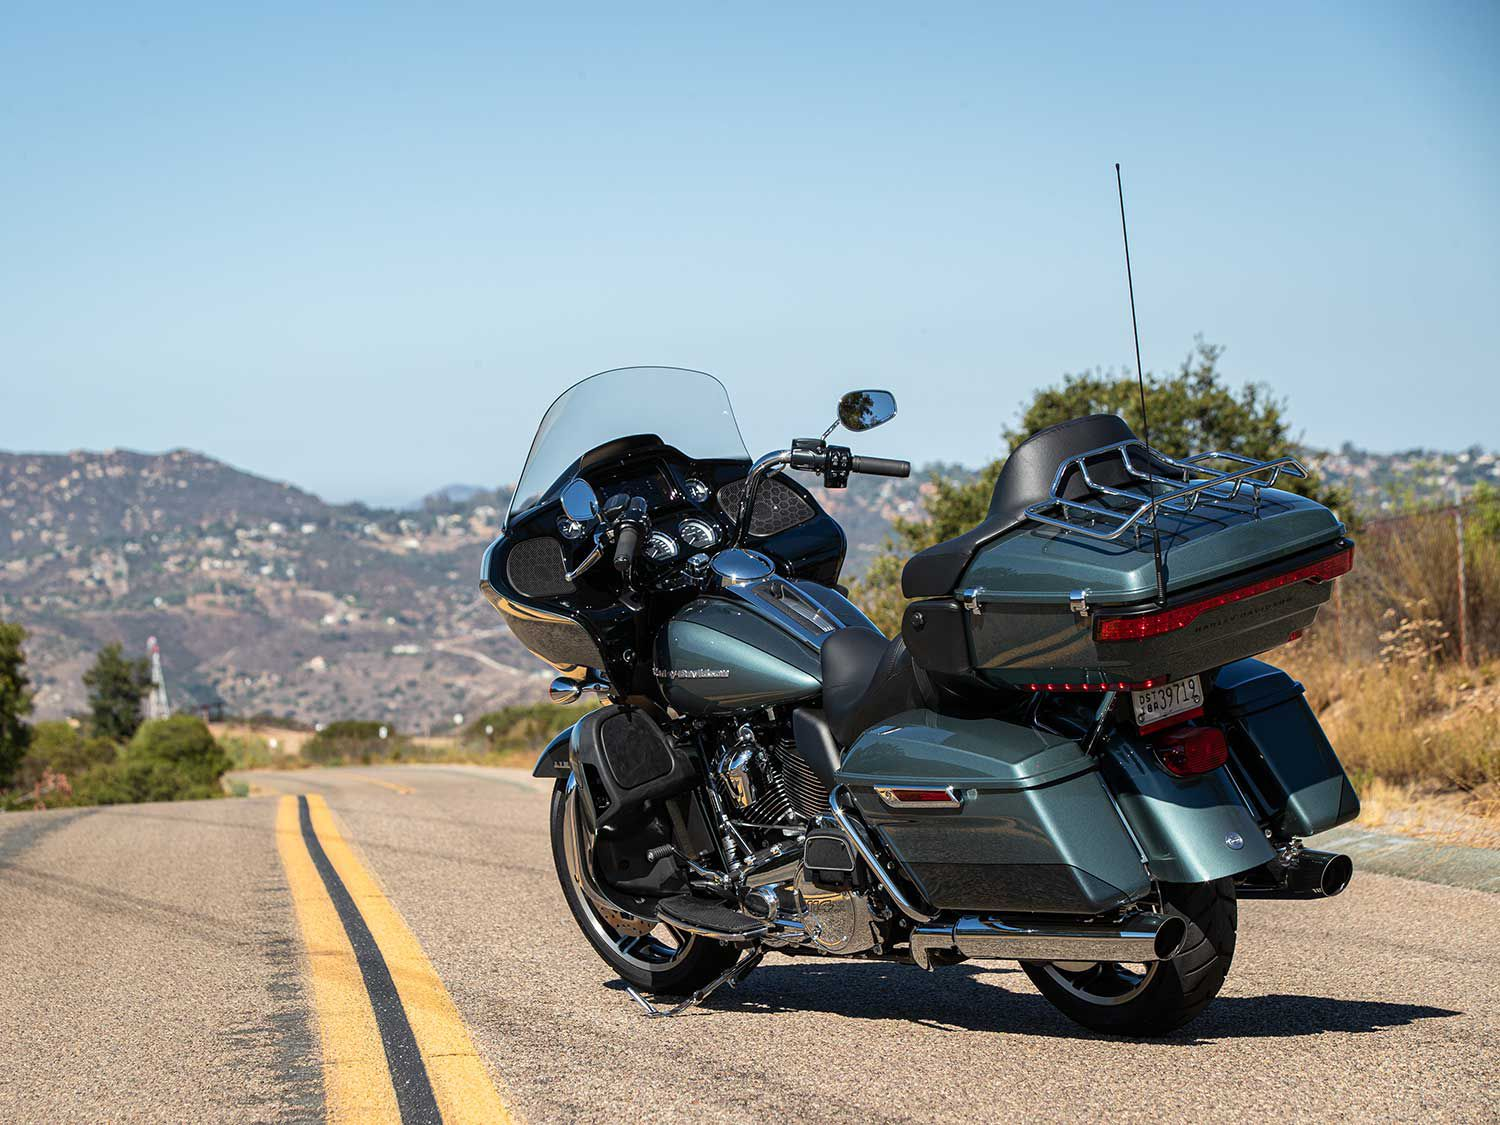 The 2020 Harley-Davidson Road Glide Limited in two-tone Silver Pine and Spruce.